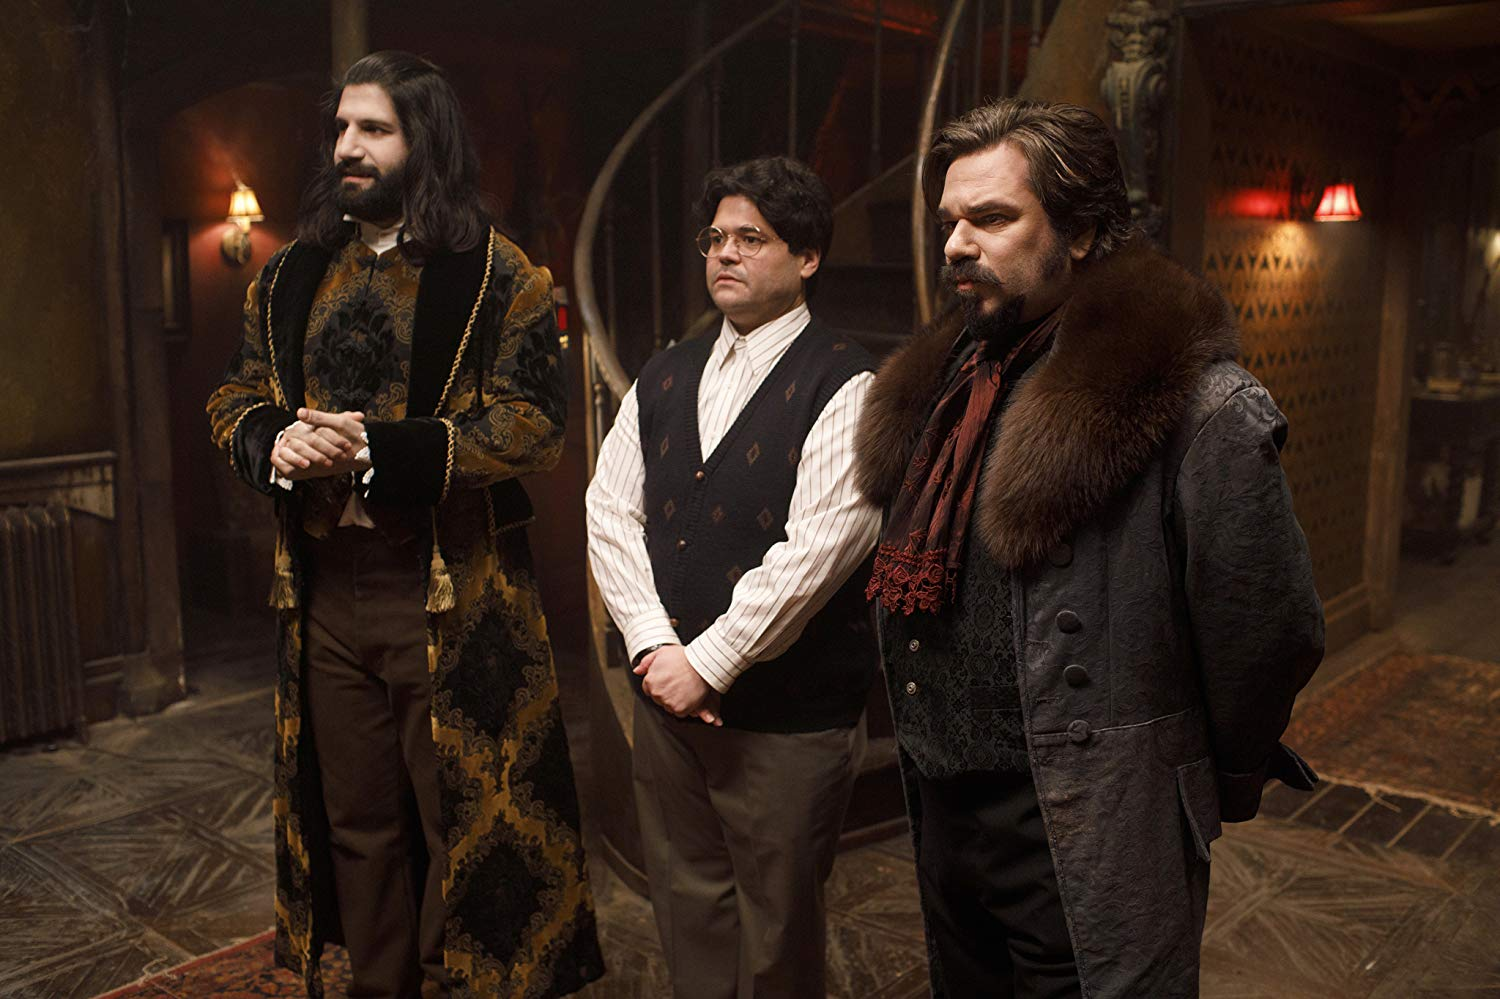 What We Do in the Shadows - Season 1